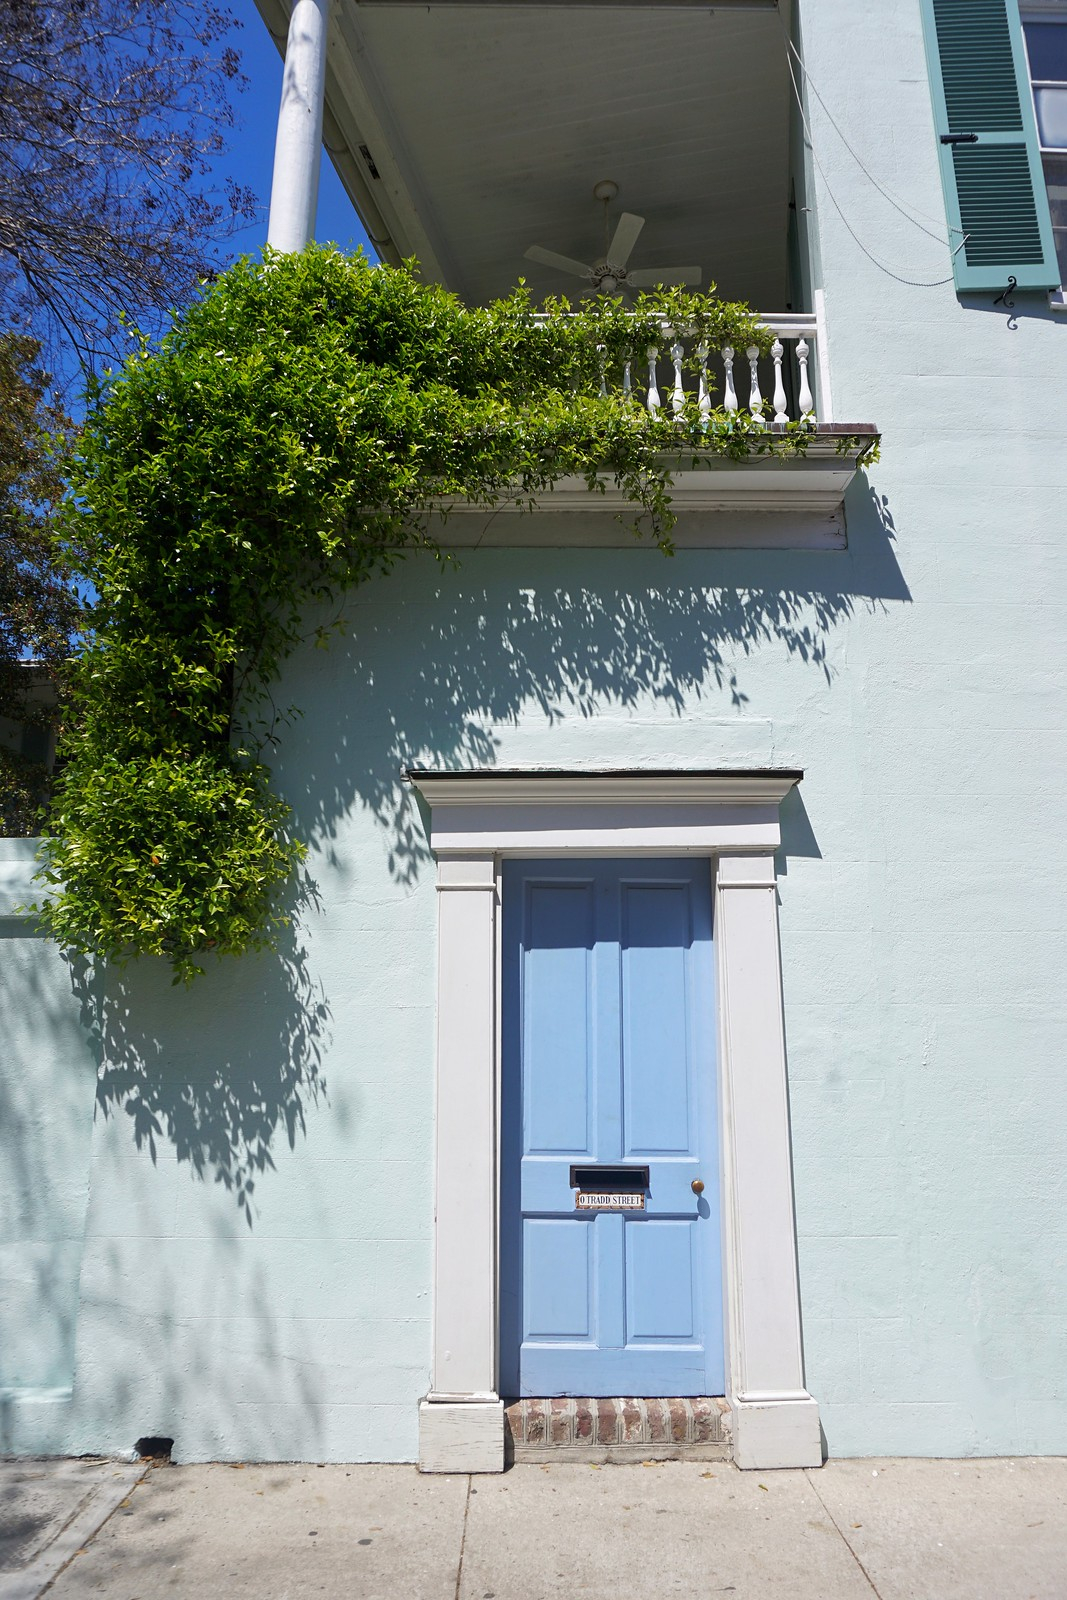 Most Beautiful Houses of Charleston | Colorful Houses of Charleston | What to do in Charleston | First Timer's Guide to 3 Days in Charleston South Carolina | Charleston Travel Guide | Best Things to do in Charleston | Best Places to visit in Charleston | Colorful Doors of Charleston